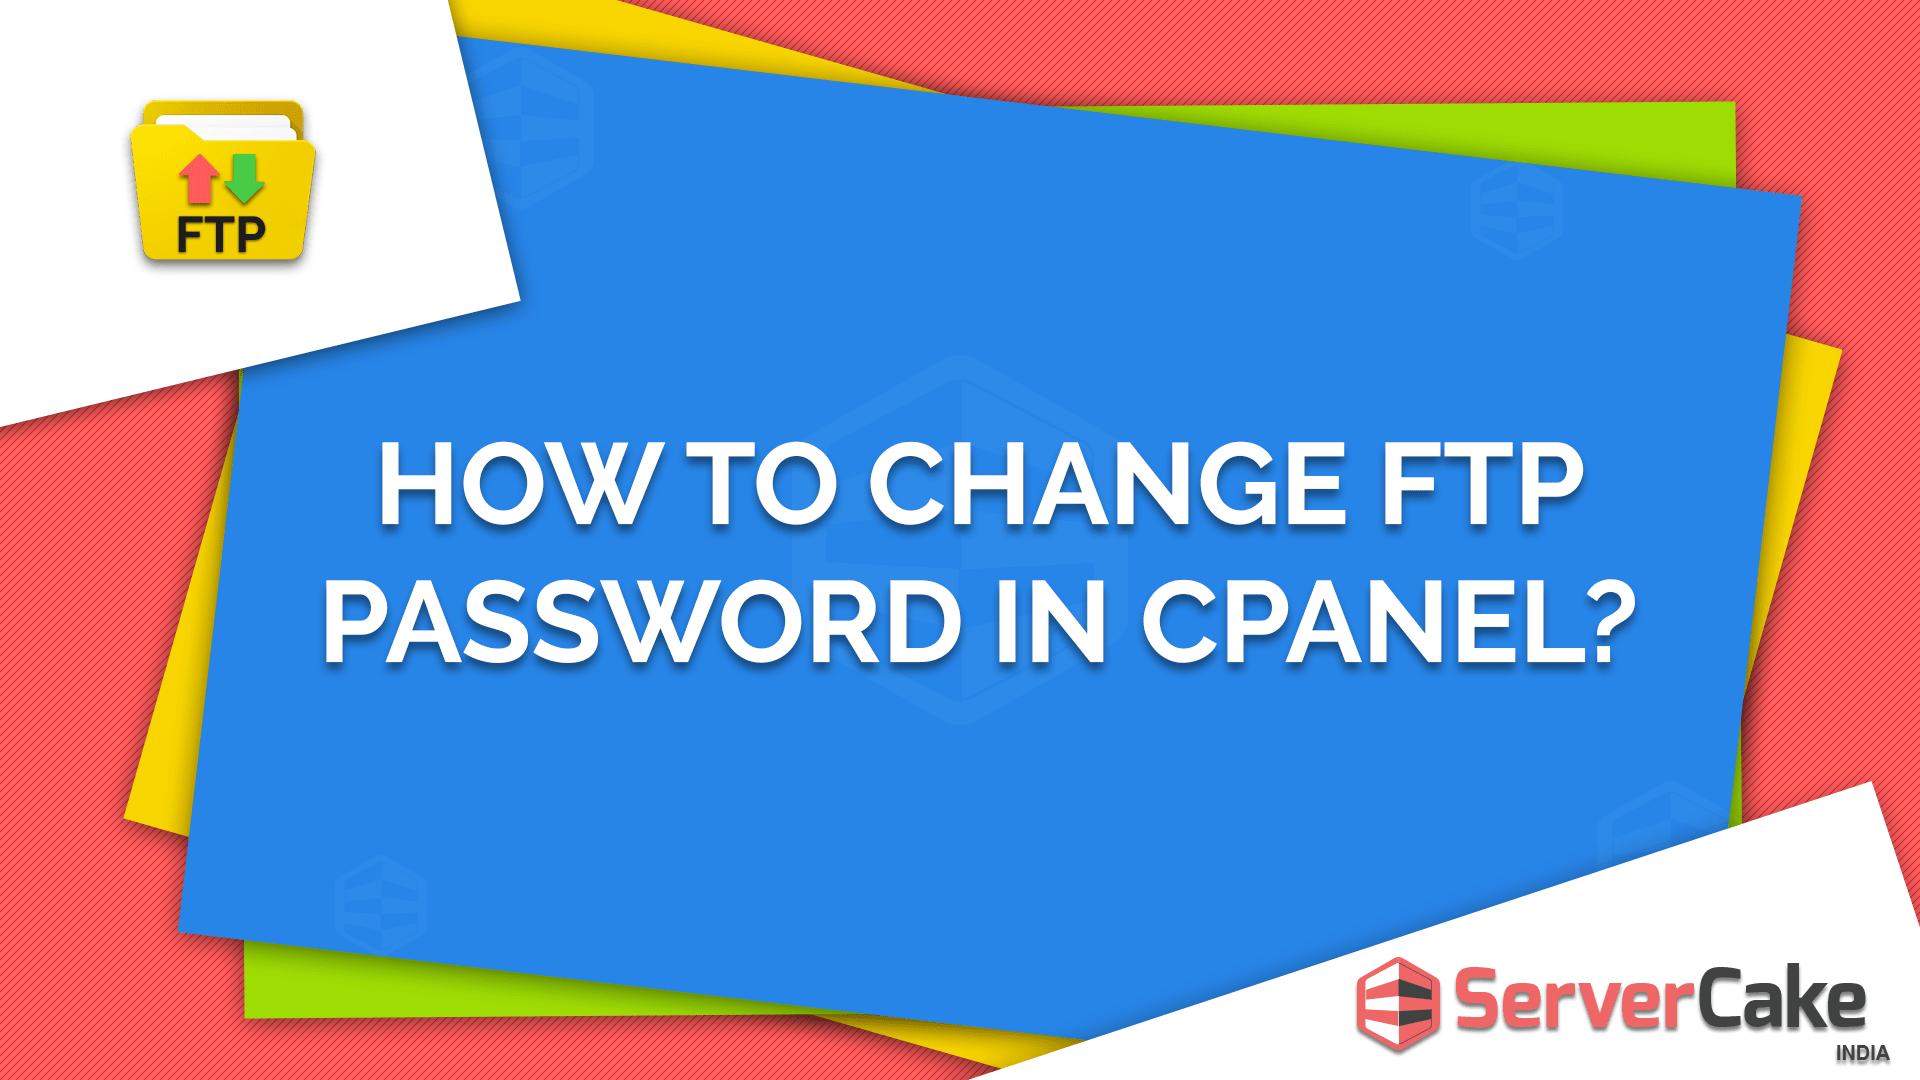 To Change FTP Password in cPanel